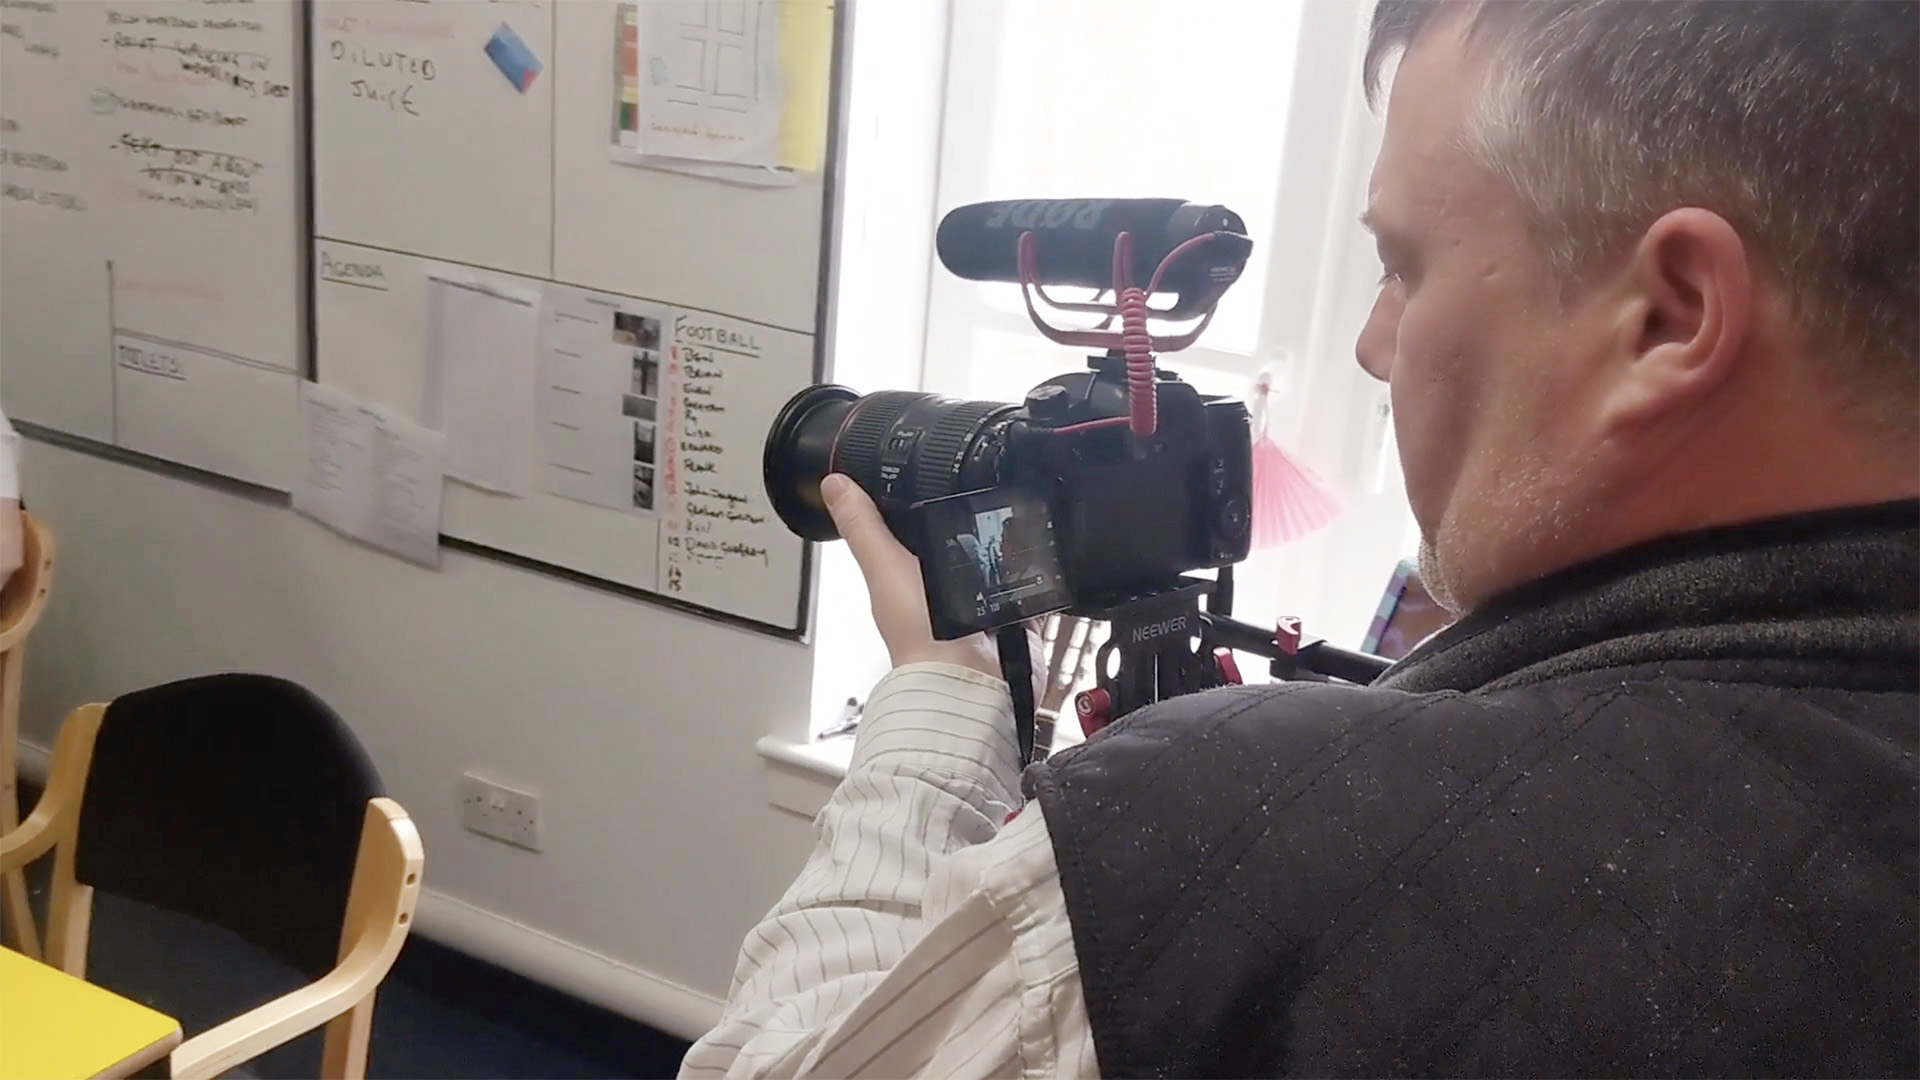 A member of Flourish House uses a handheld camera and shoulder mount